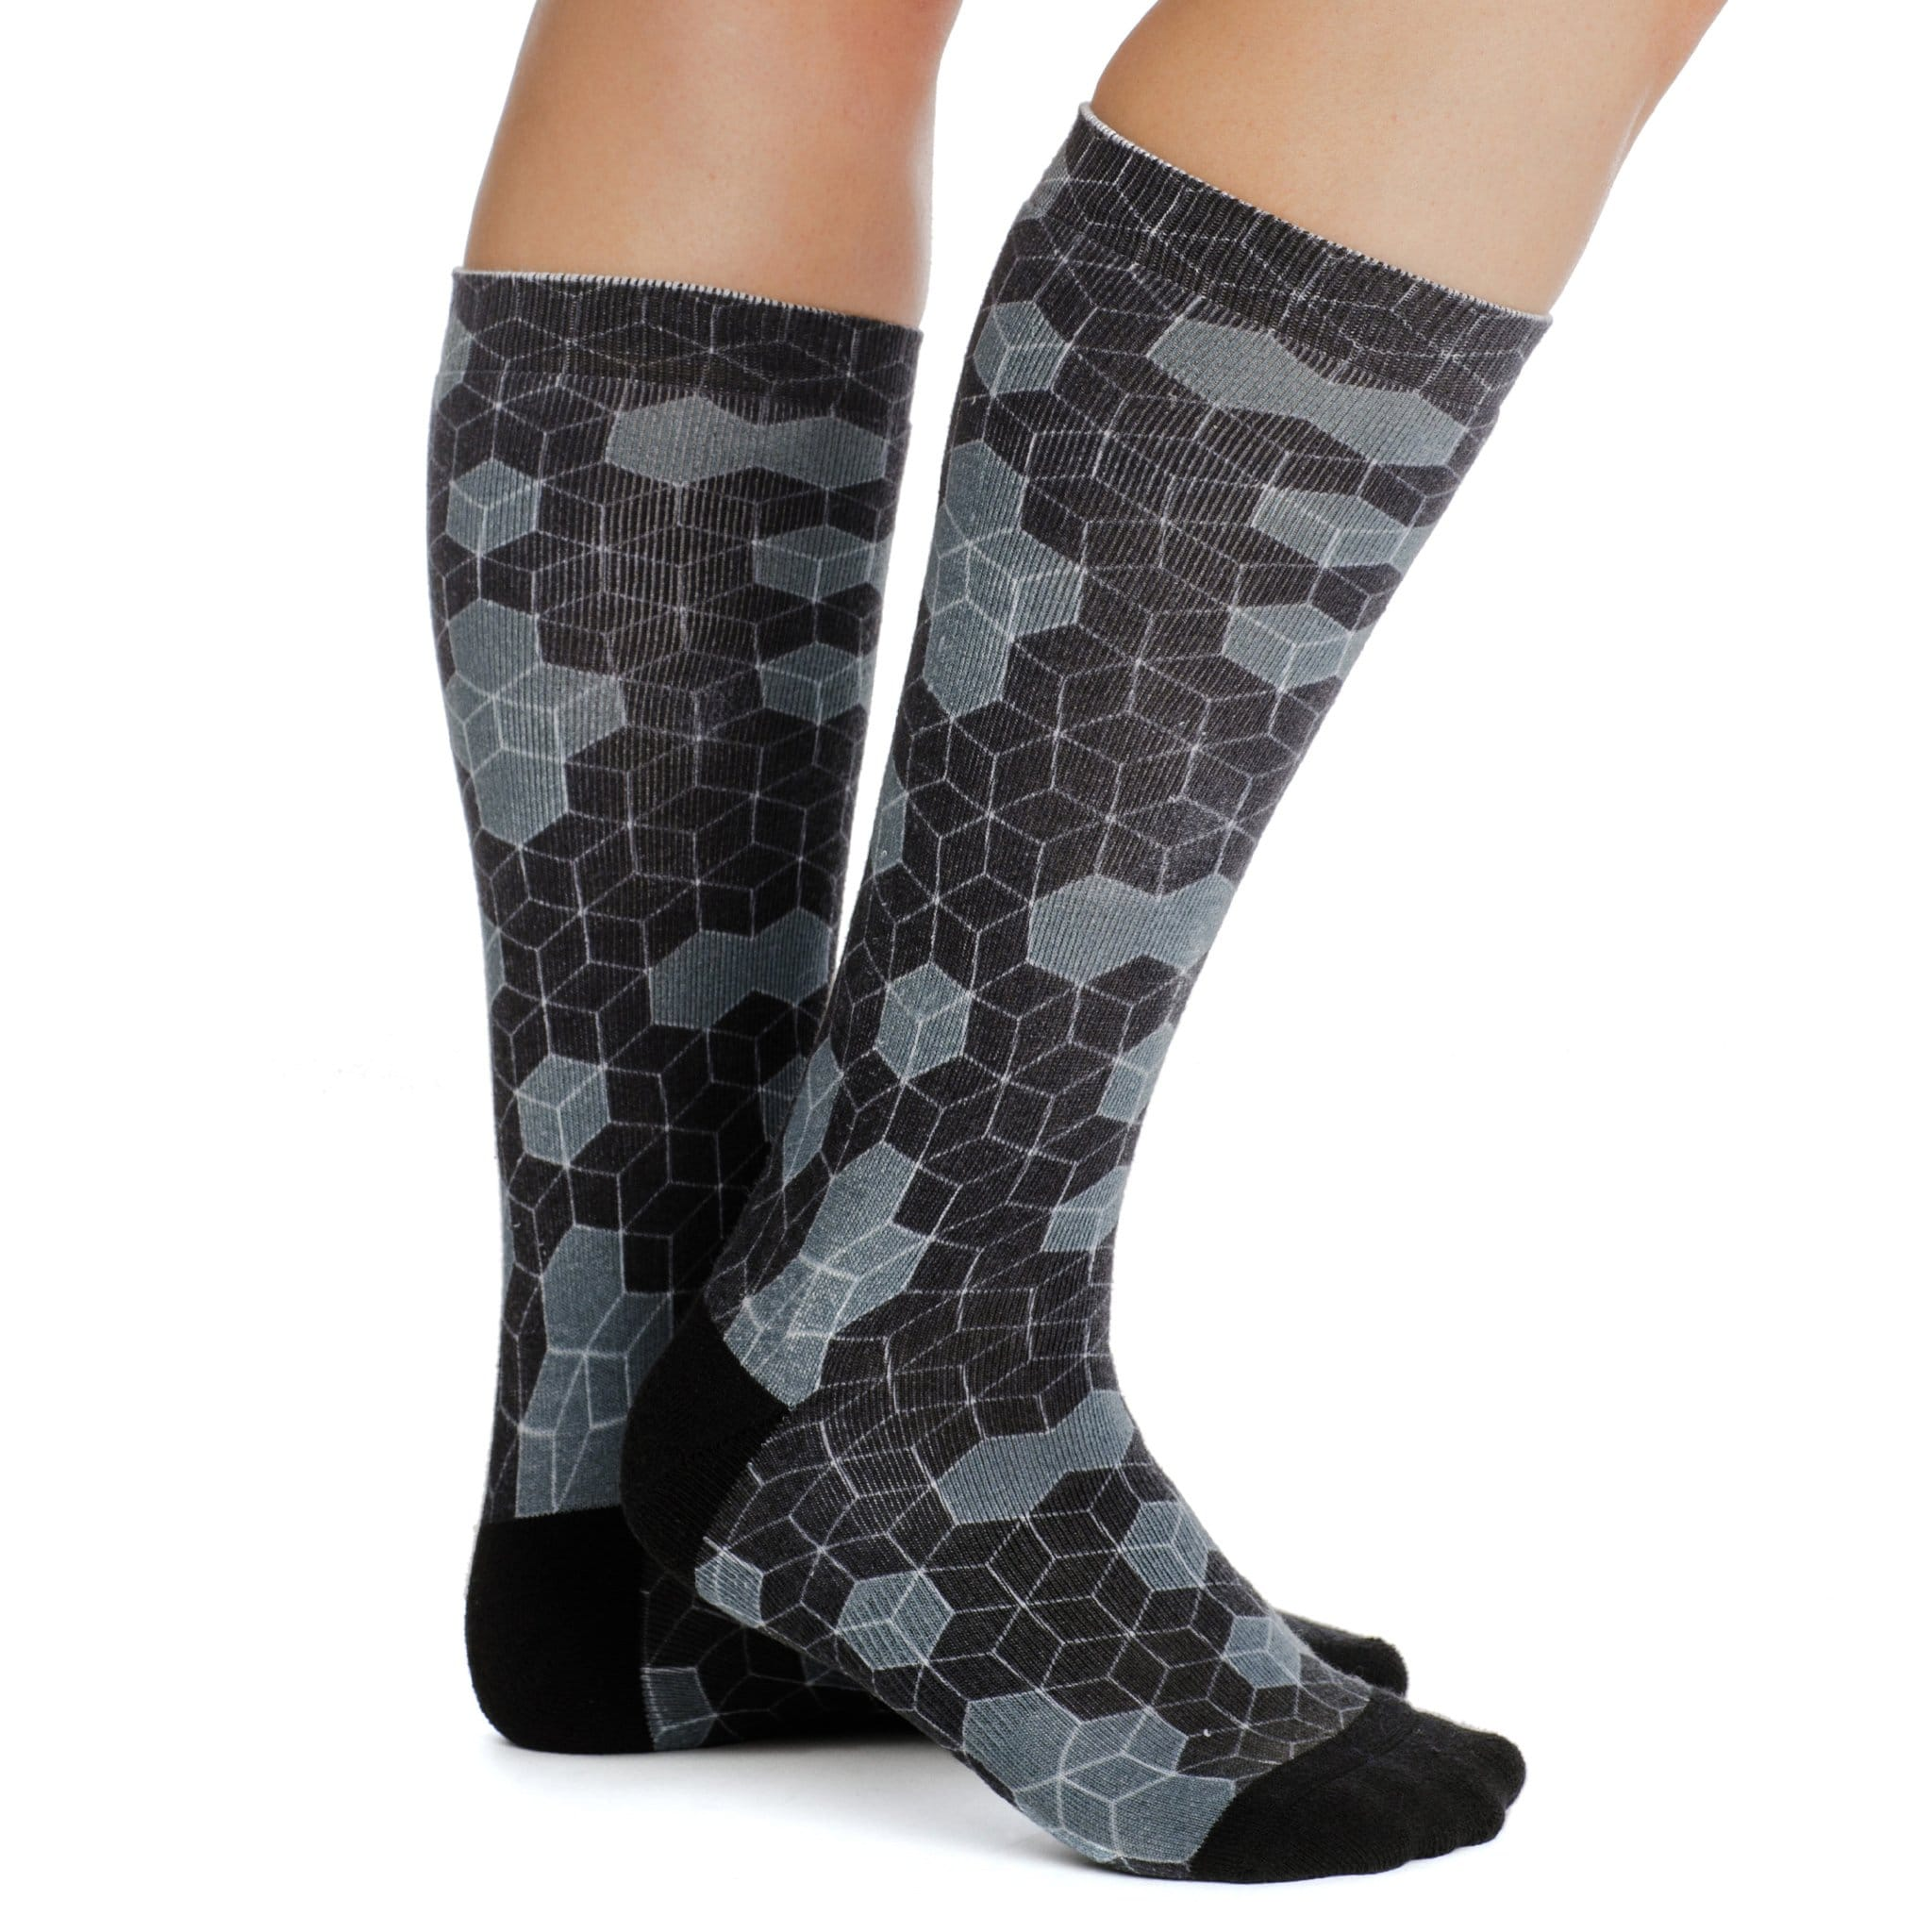 Horseware Winter Tech Riding Socks COHFTR-8HEX-36.